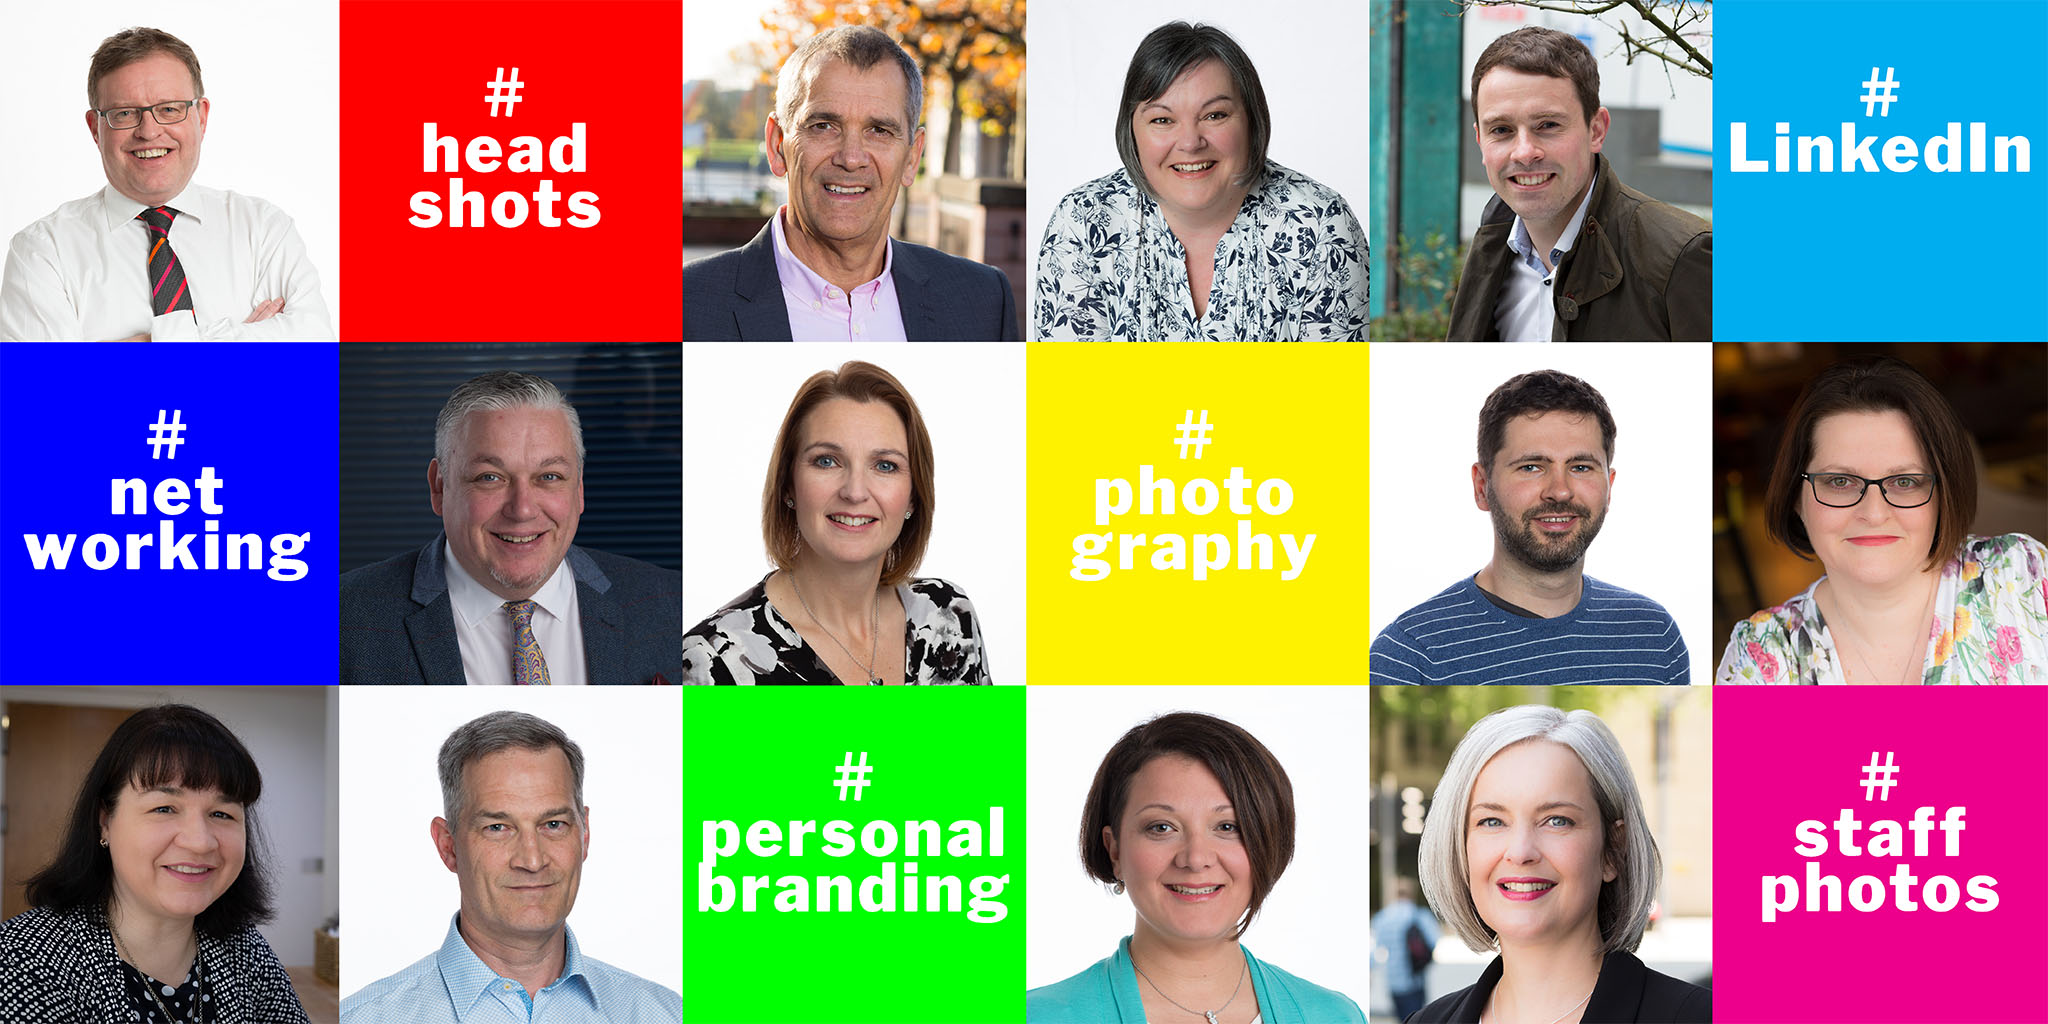 Business portraits, headshots, staff photos